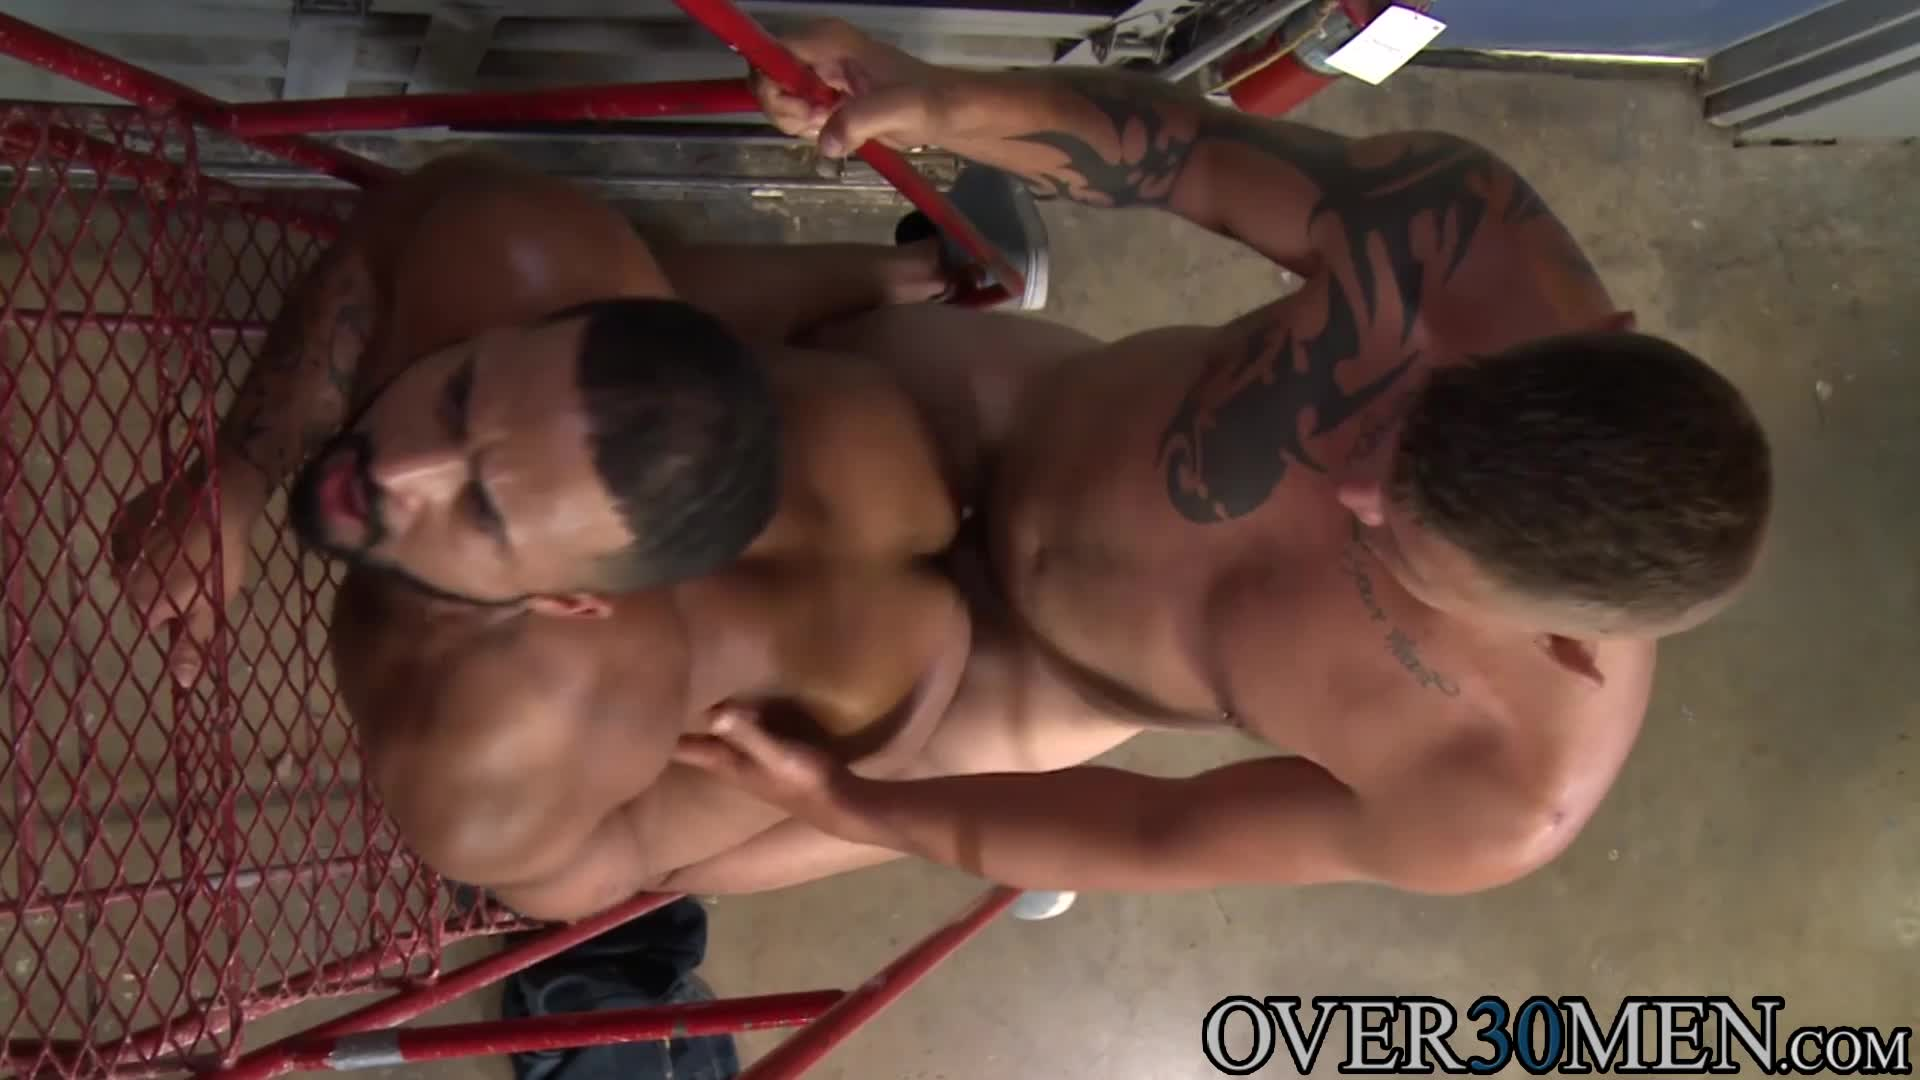 Jace chambers and damian taylor have kinky gay sex